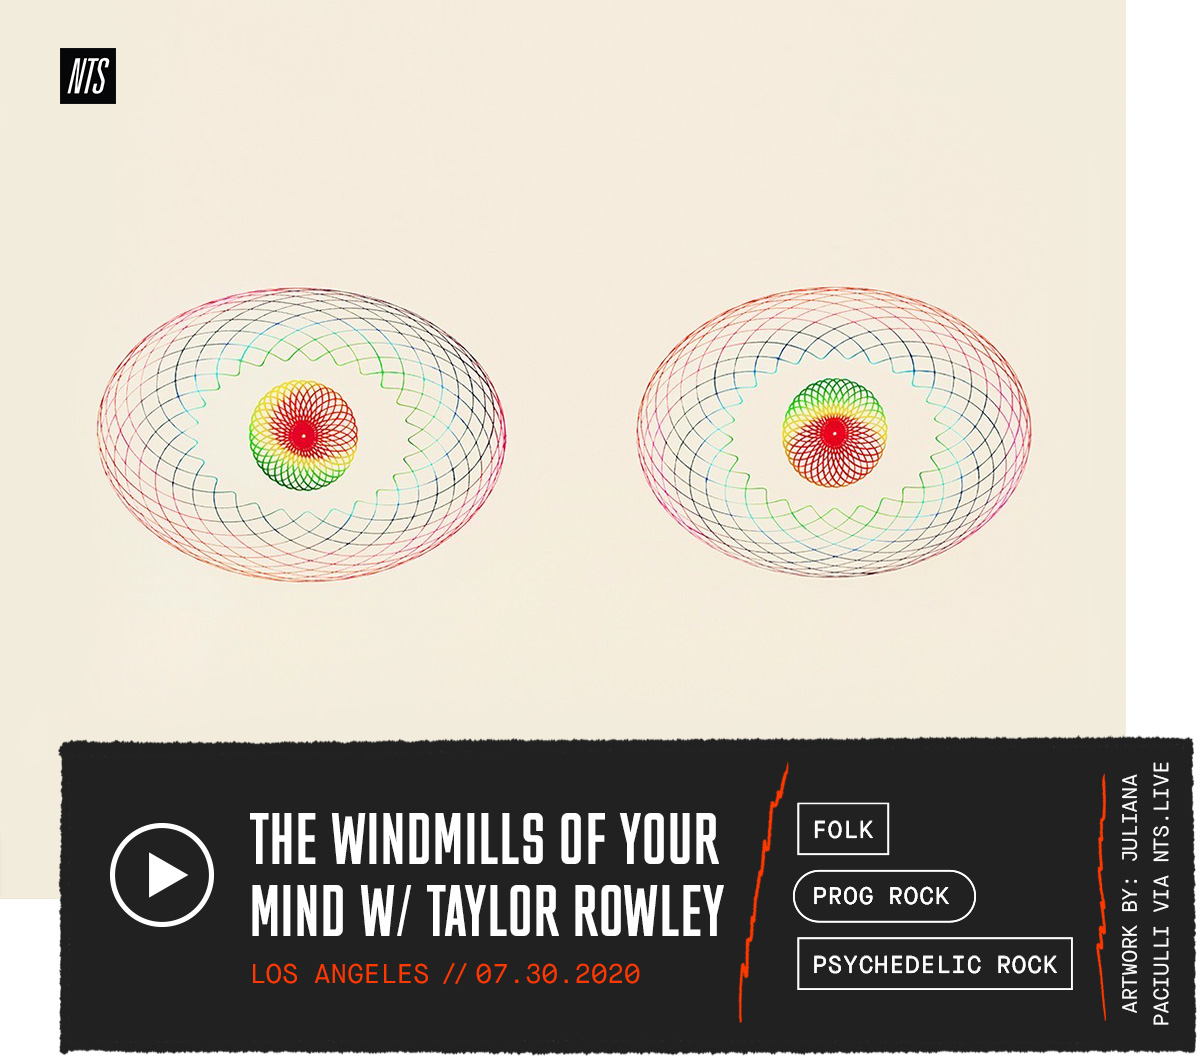 NTS Radio – THE WINDMILLS OF YOUR MIND W/ TAYLOR ROWLEY